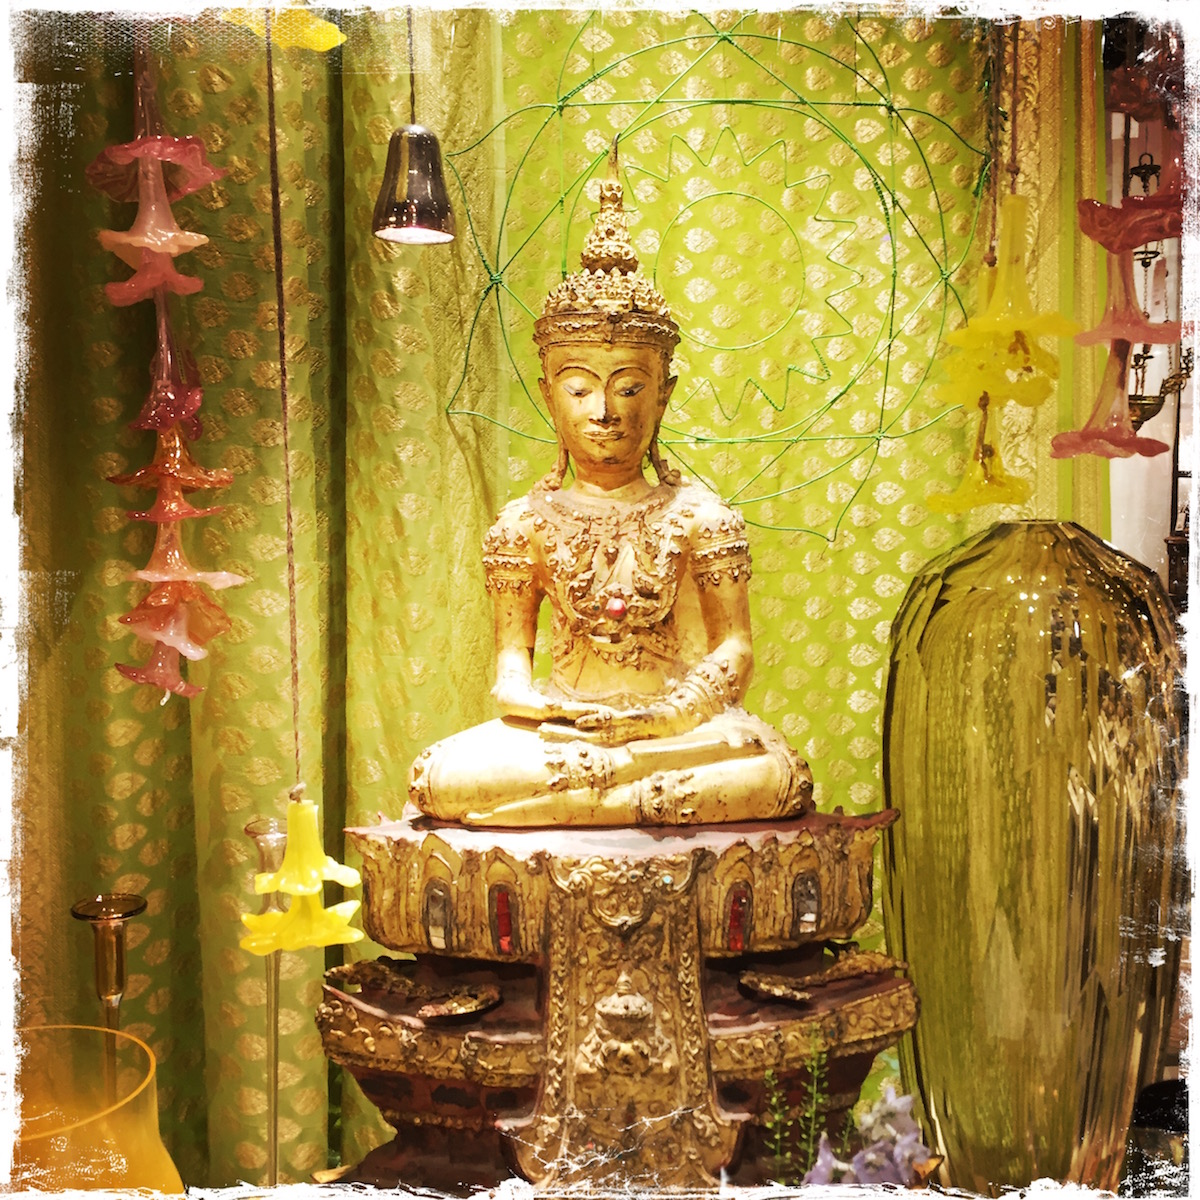 Buddha display at ABC Home, NYC. Photo by Barbara Sinclair